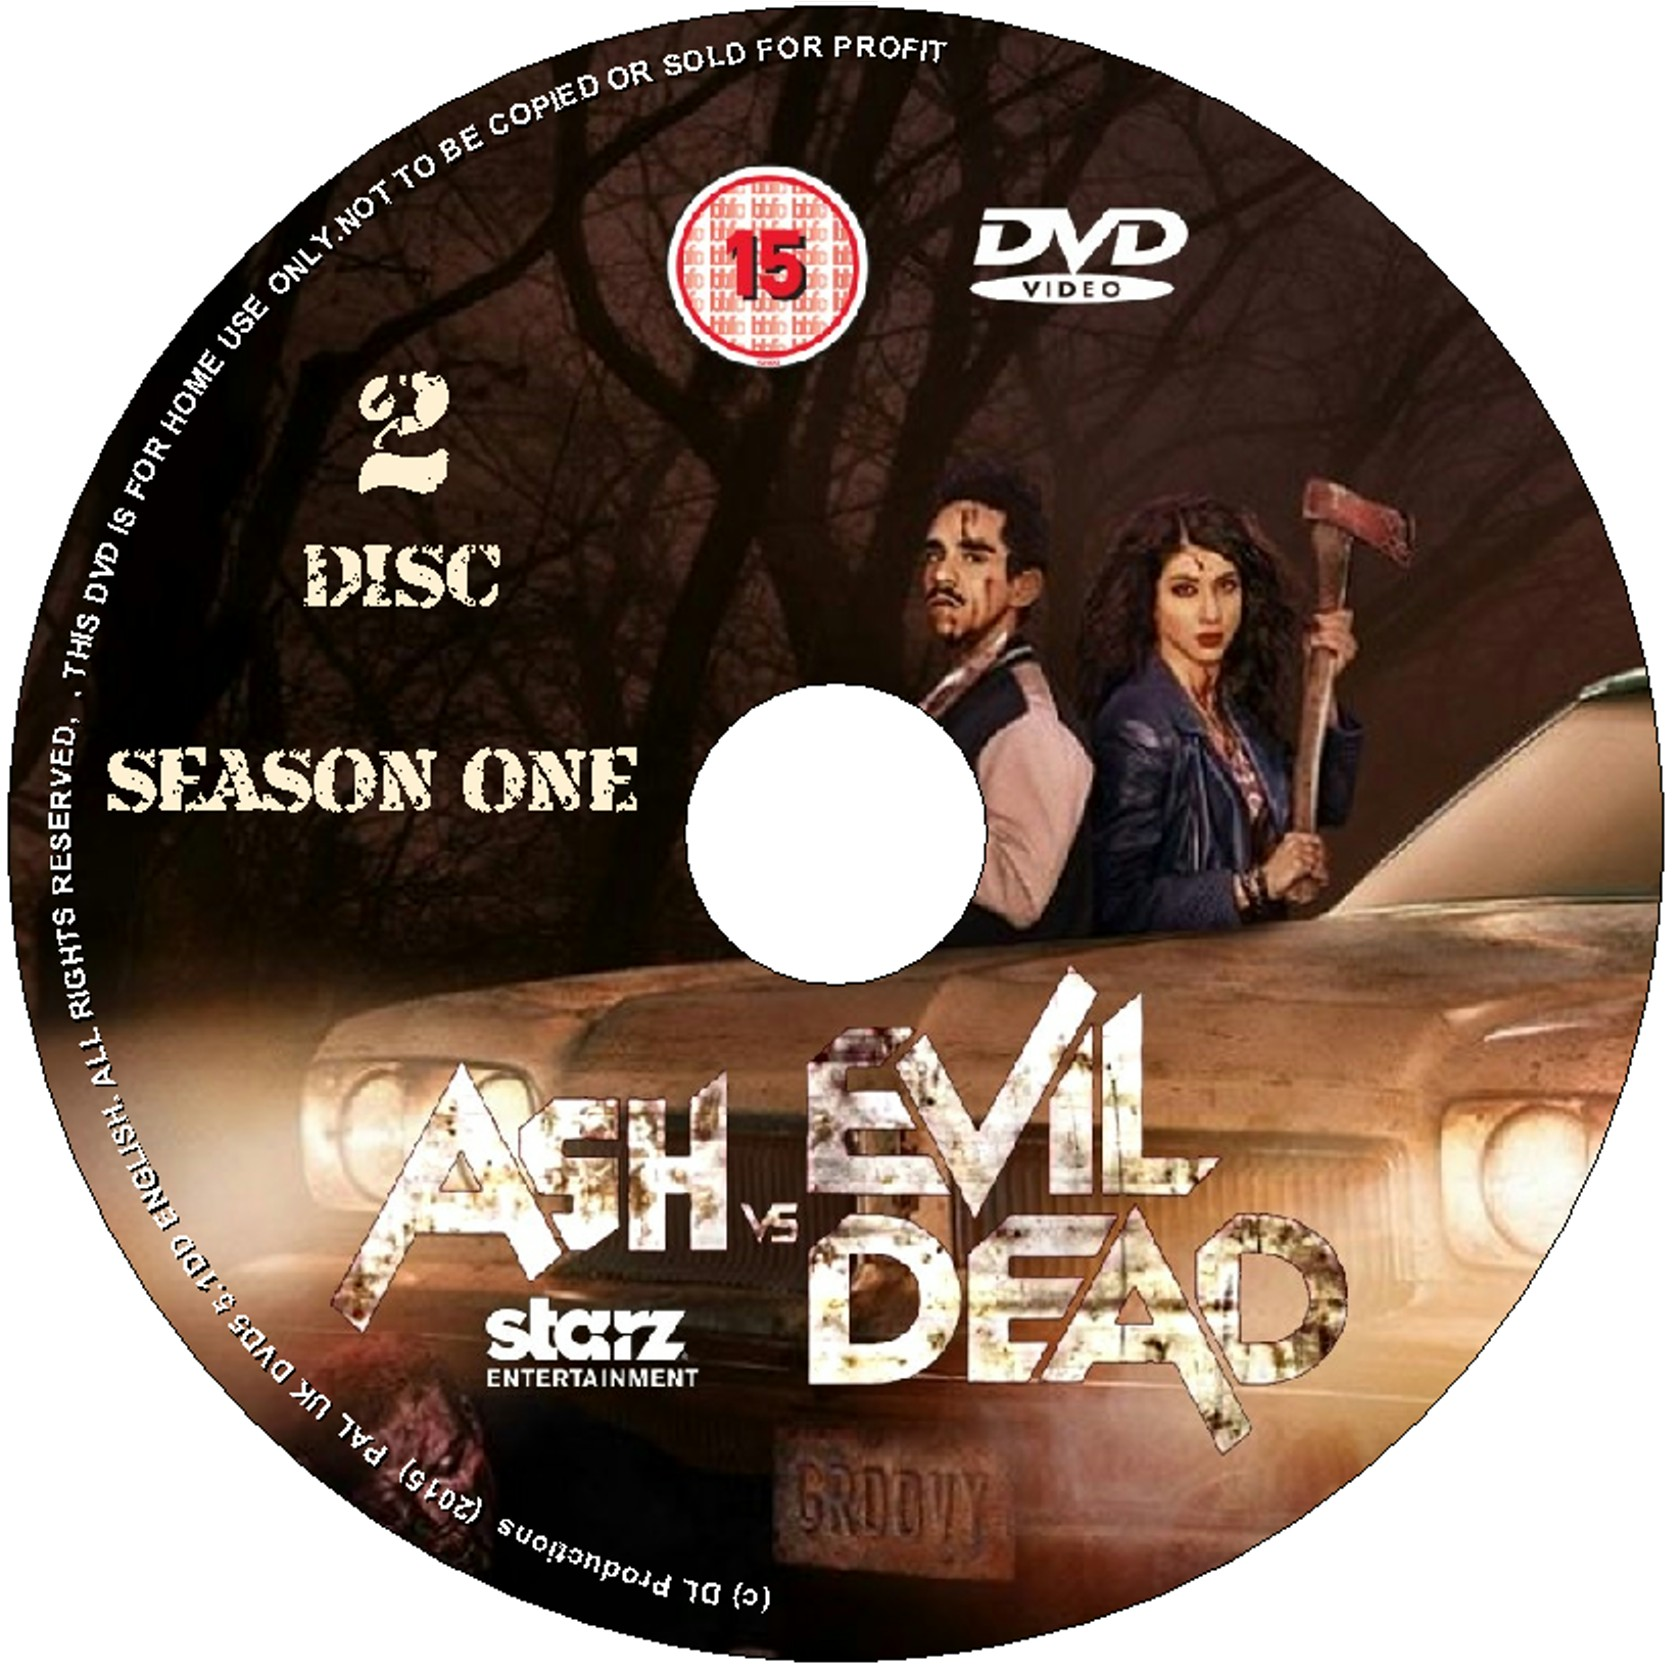 Ash vs evil dead soundtrack tracklist season 1 youtube.